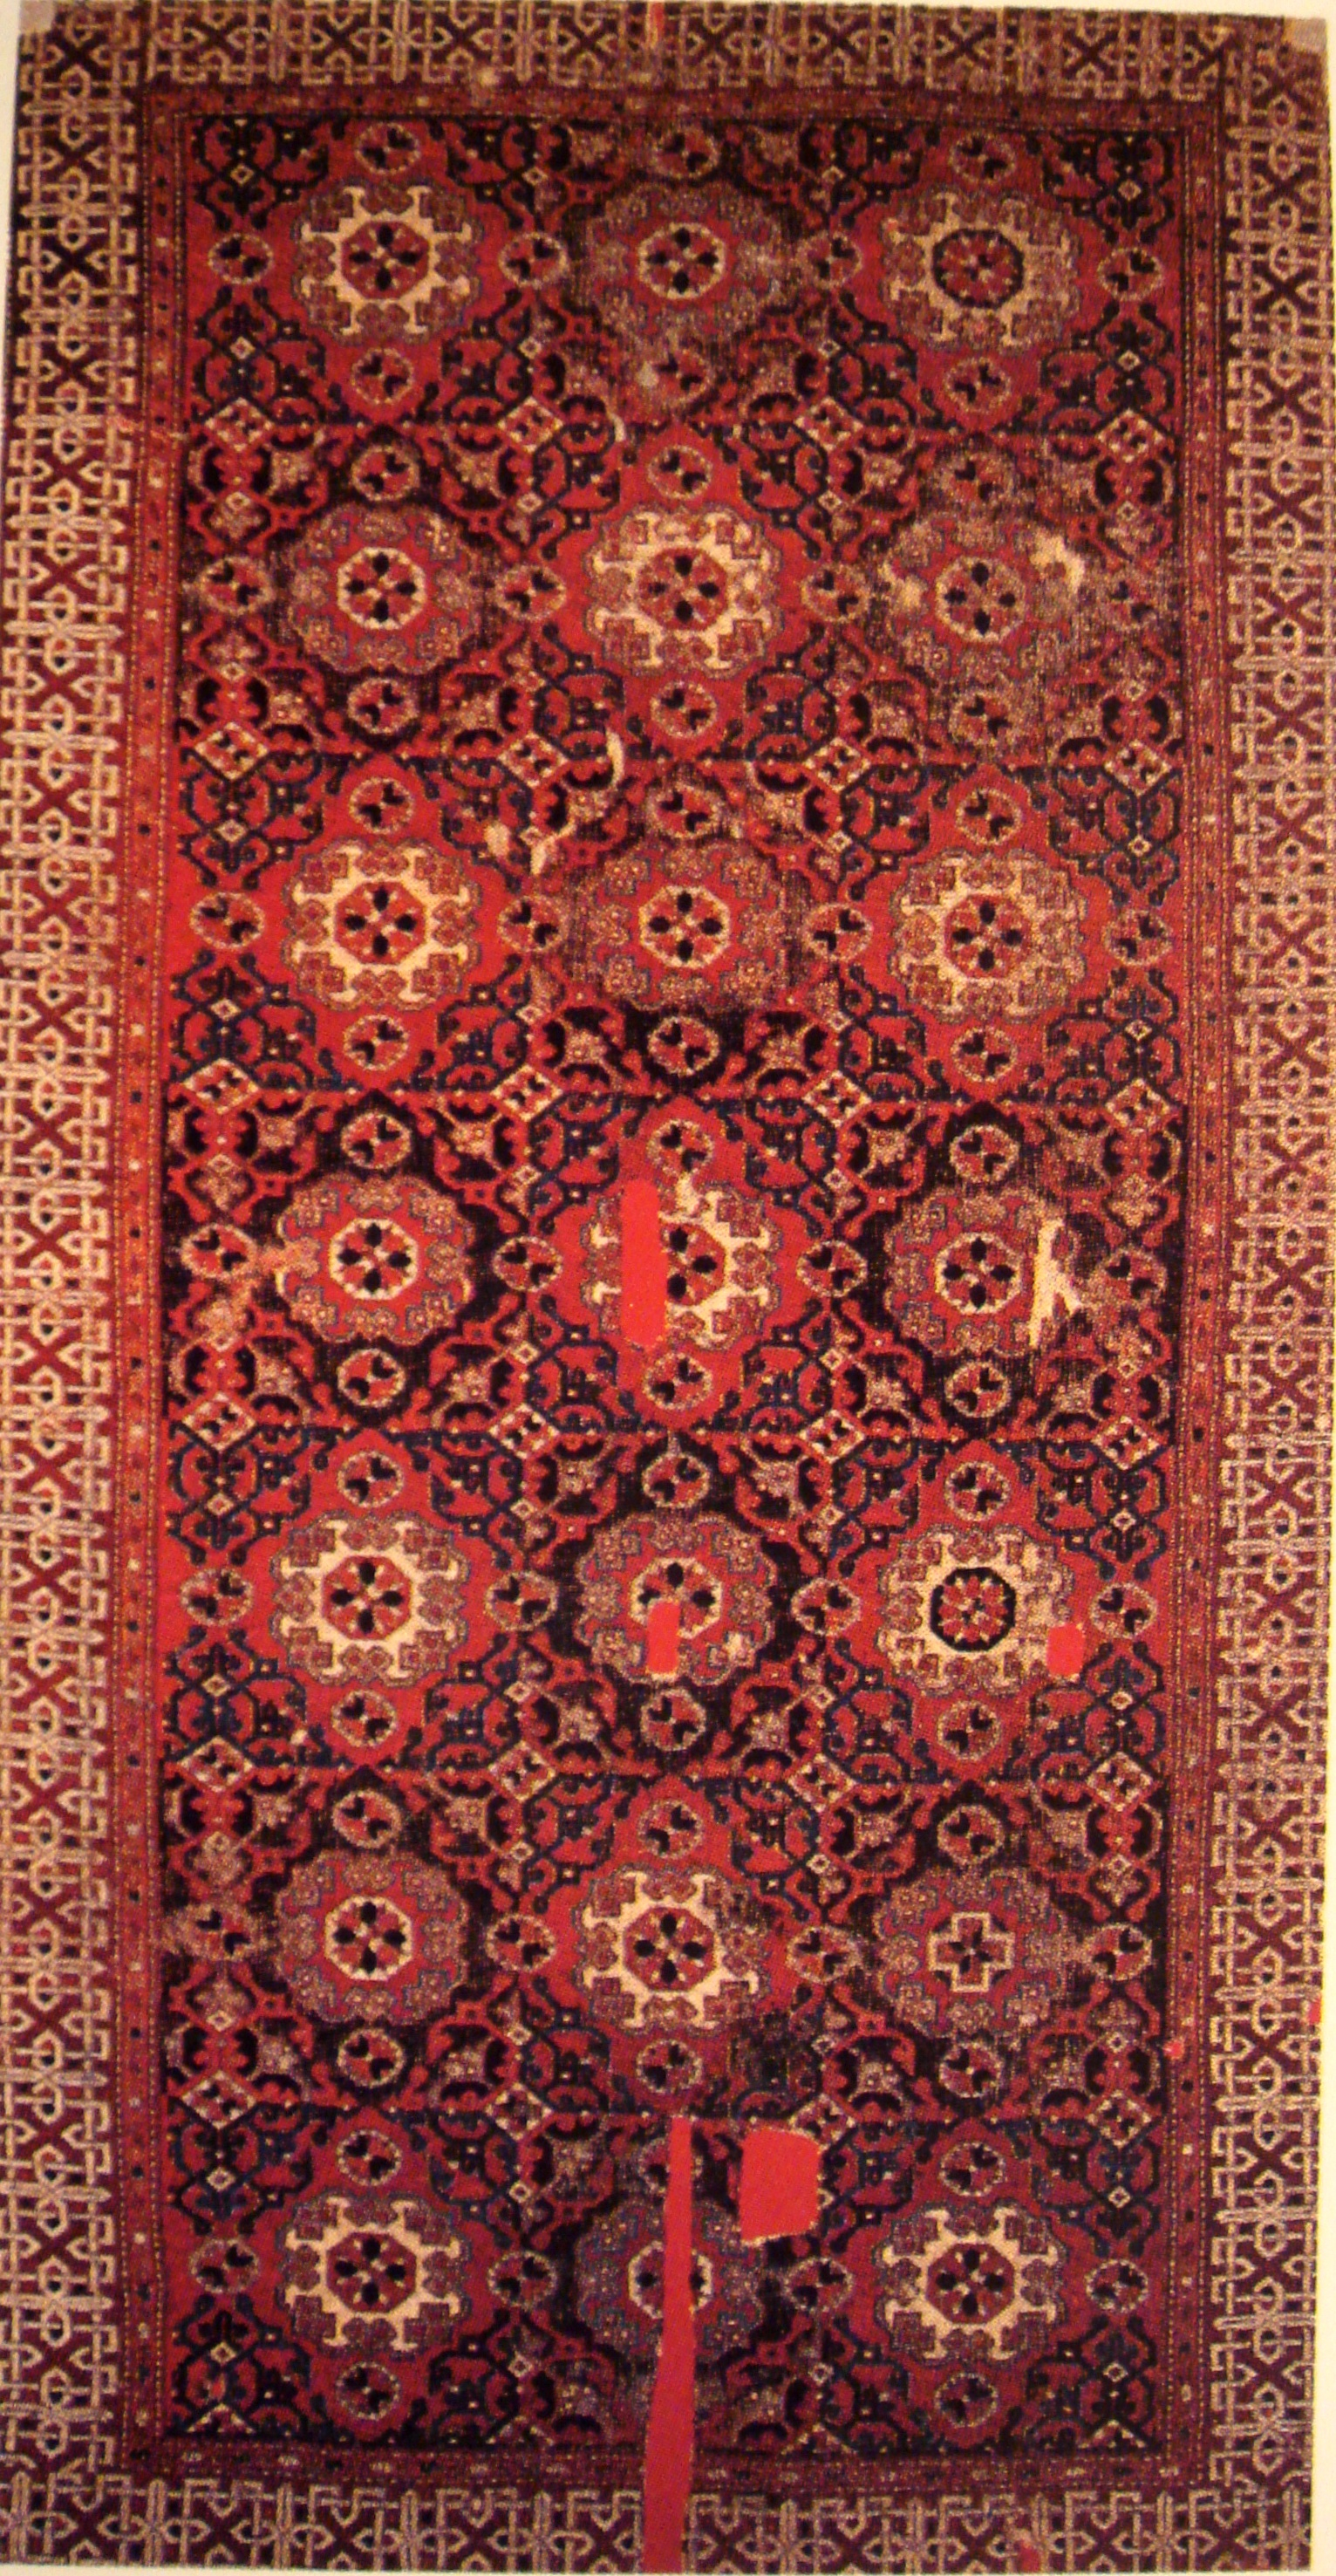 FileSmall pattern Holbein carpet Anatolia 16th century